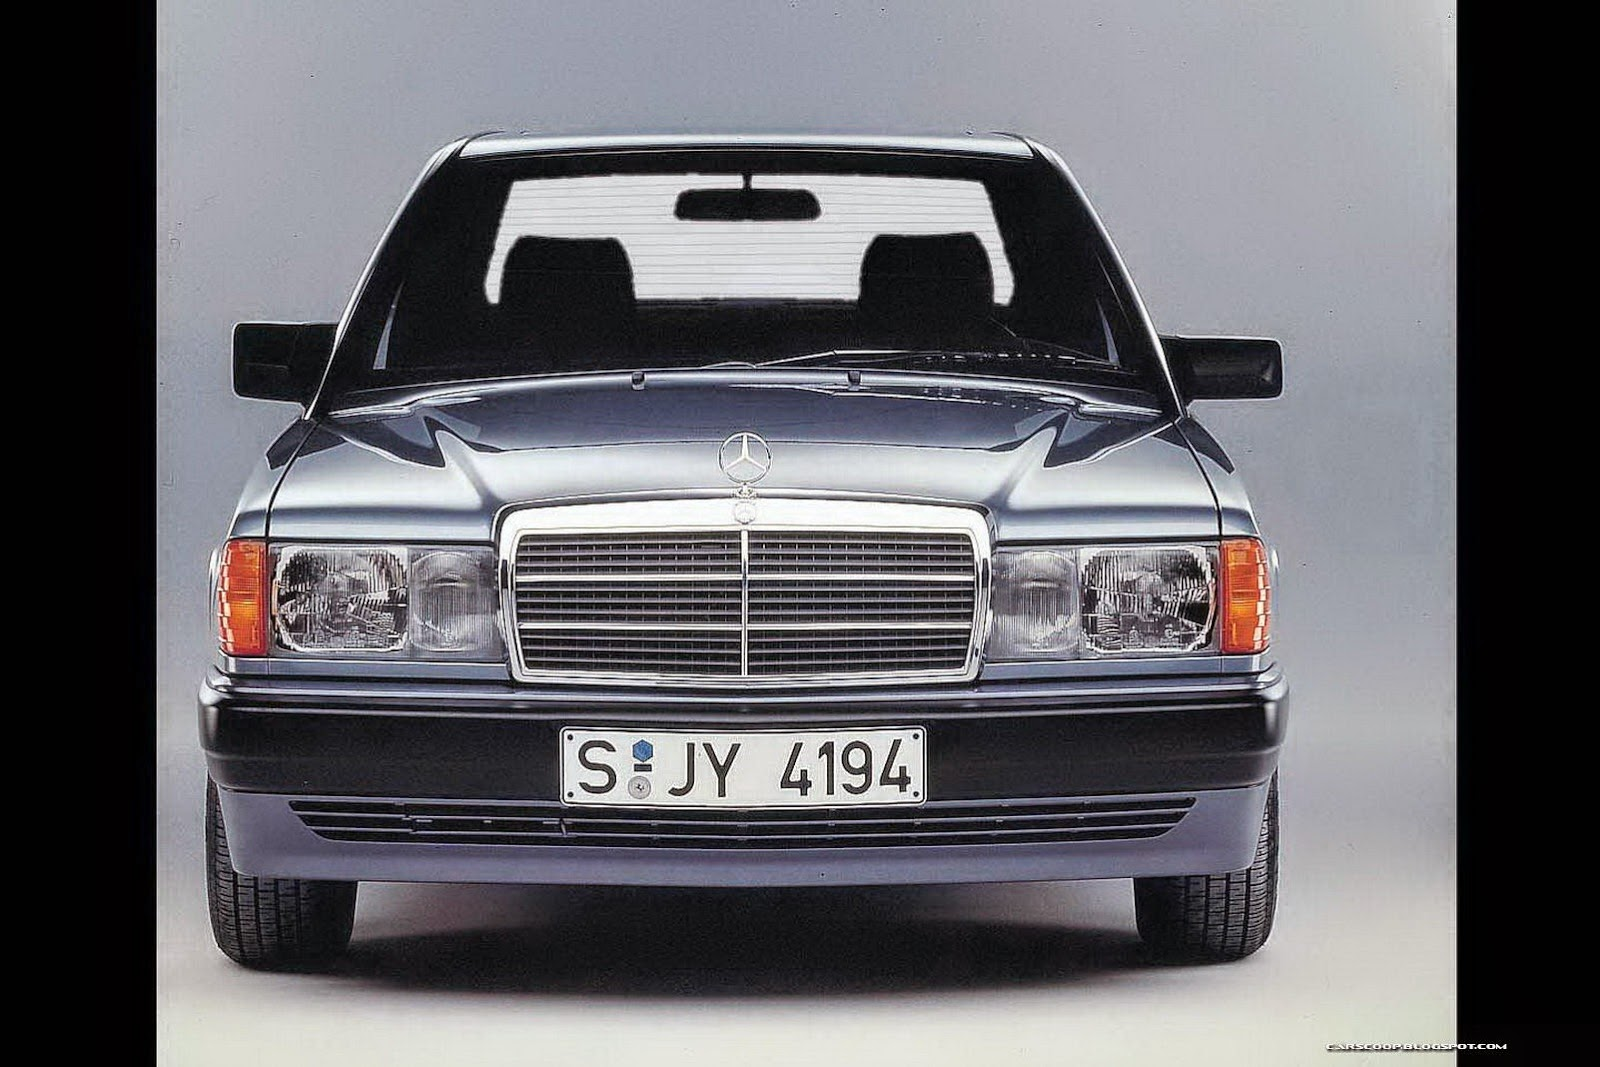 Mercedes benz w201 190e 2 3 2 for Mercedes benz 190e headlights